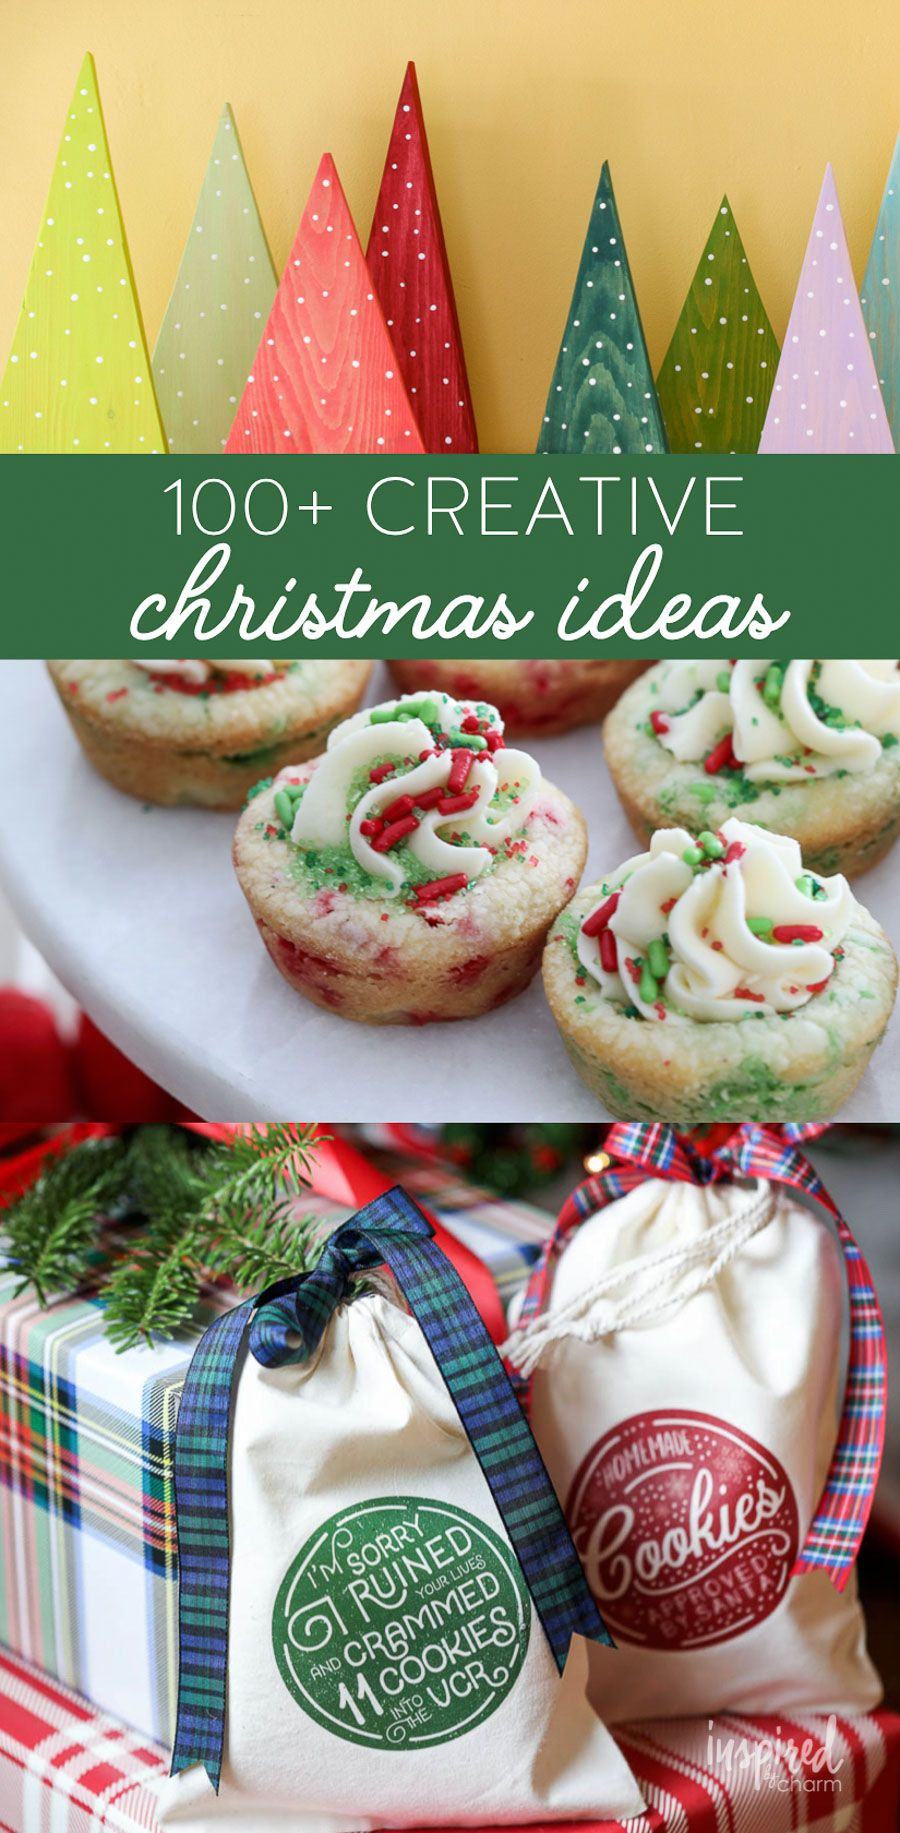 100 Creative Christmas Ideas To Celebrate The Holiday Season Christmas Decor Recipes Craft Creative Christmas Homemade Christmas Homemade Christmas Gifts